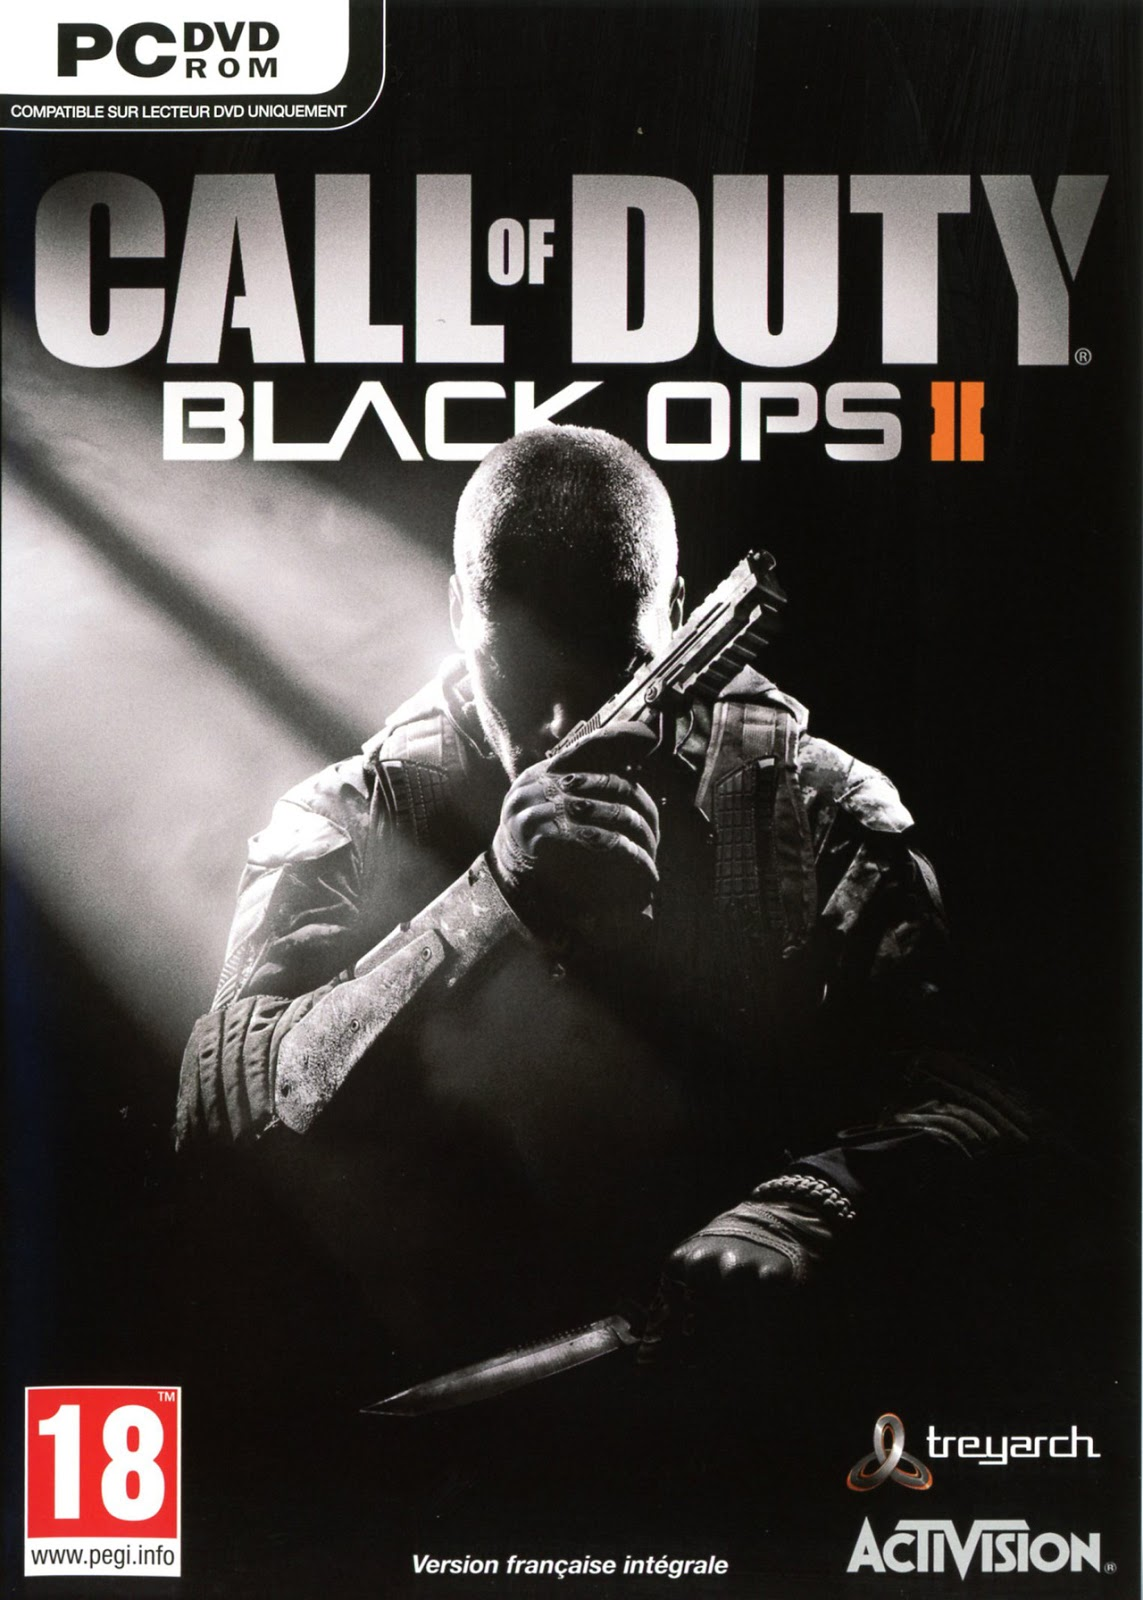 Download call of duty black ops 2 highly compressed 10mb